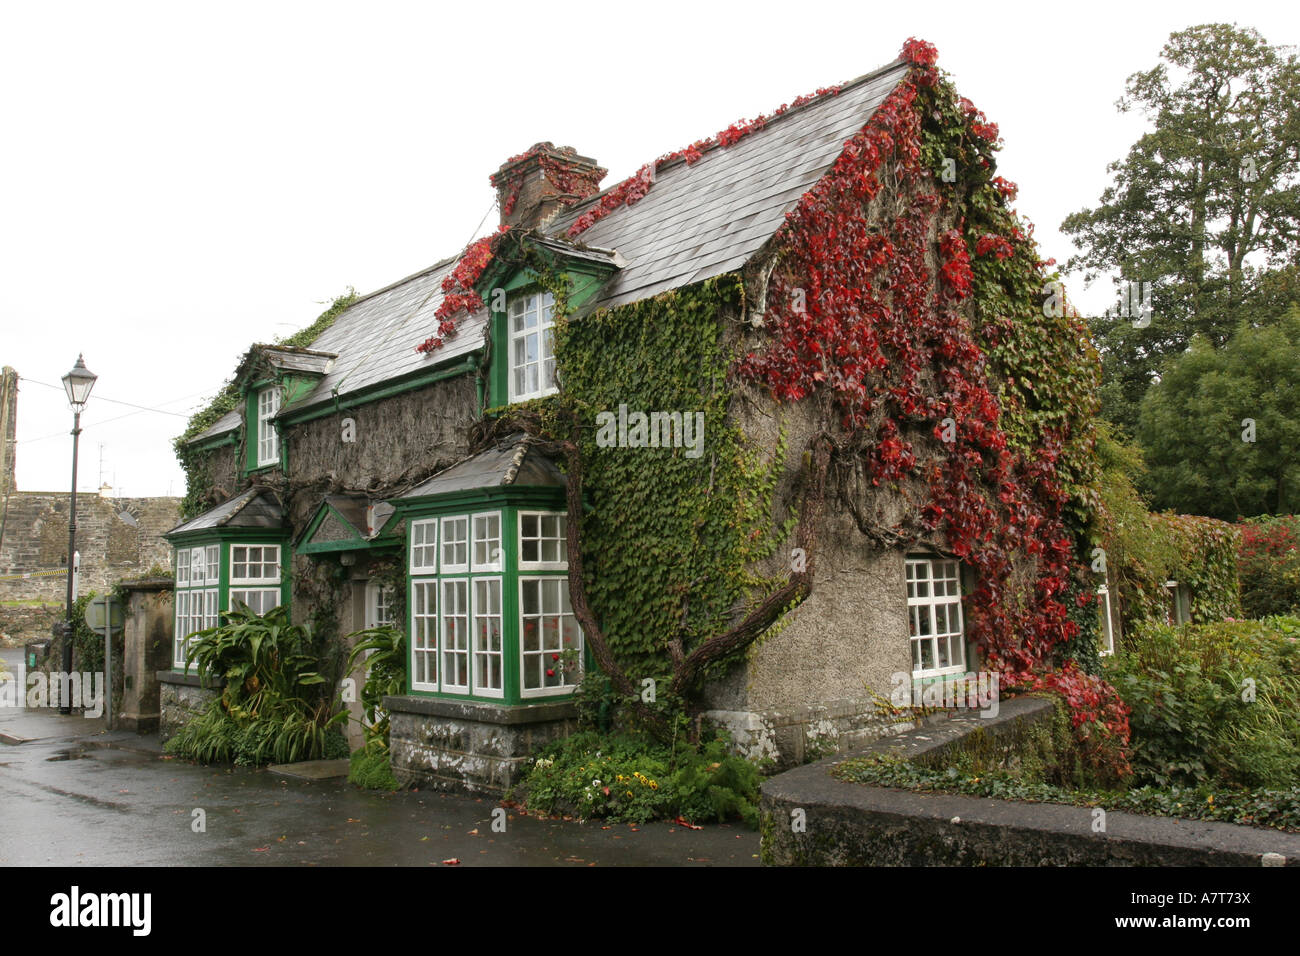 House on roadside covered with ivy, Republic of Ireland - Stock Image